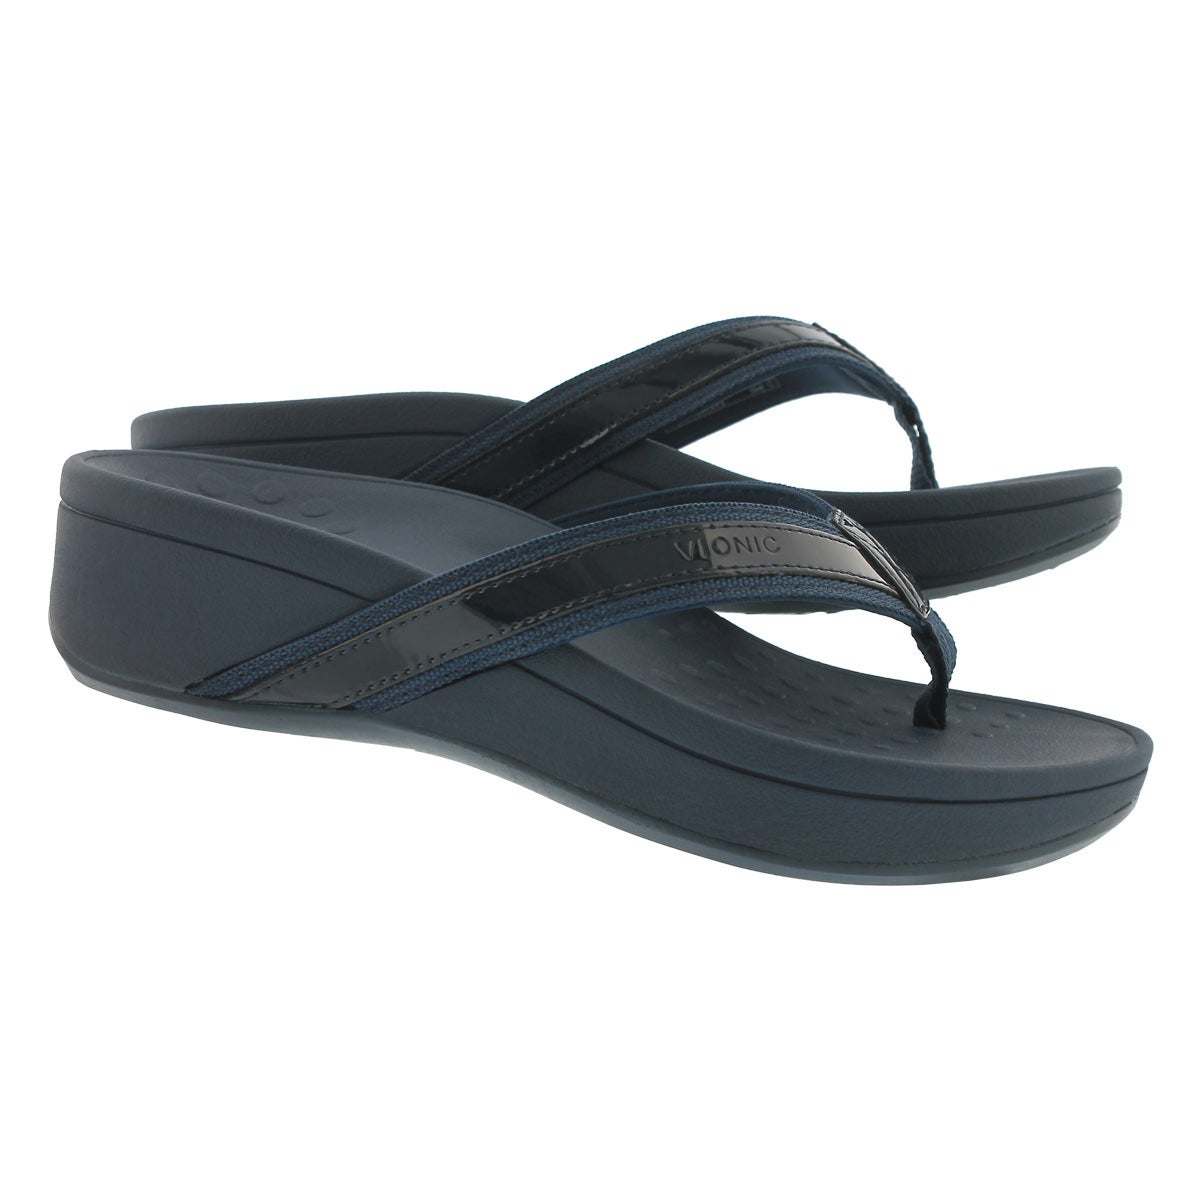 Lds High Tide navy arch support wdg sndl